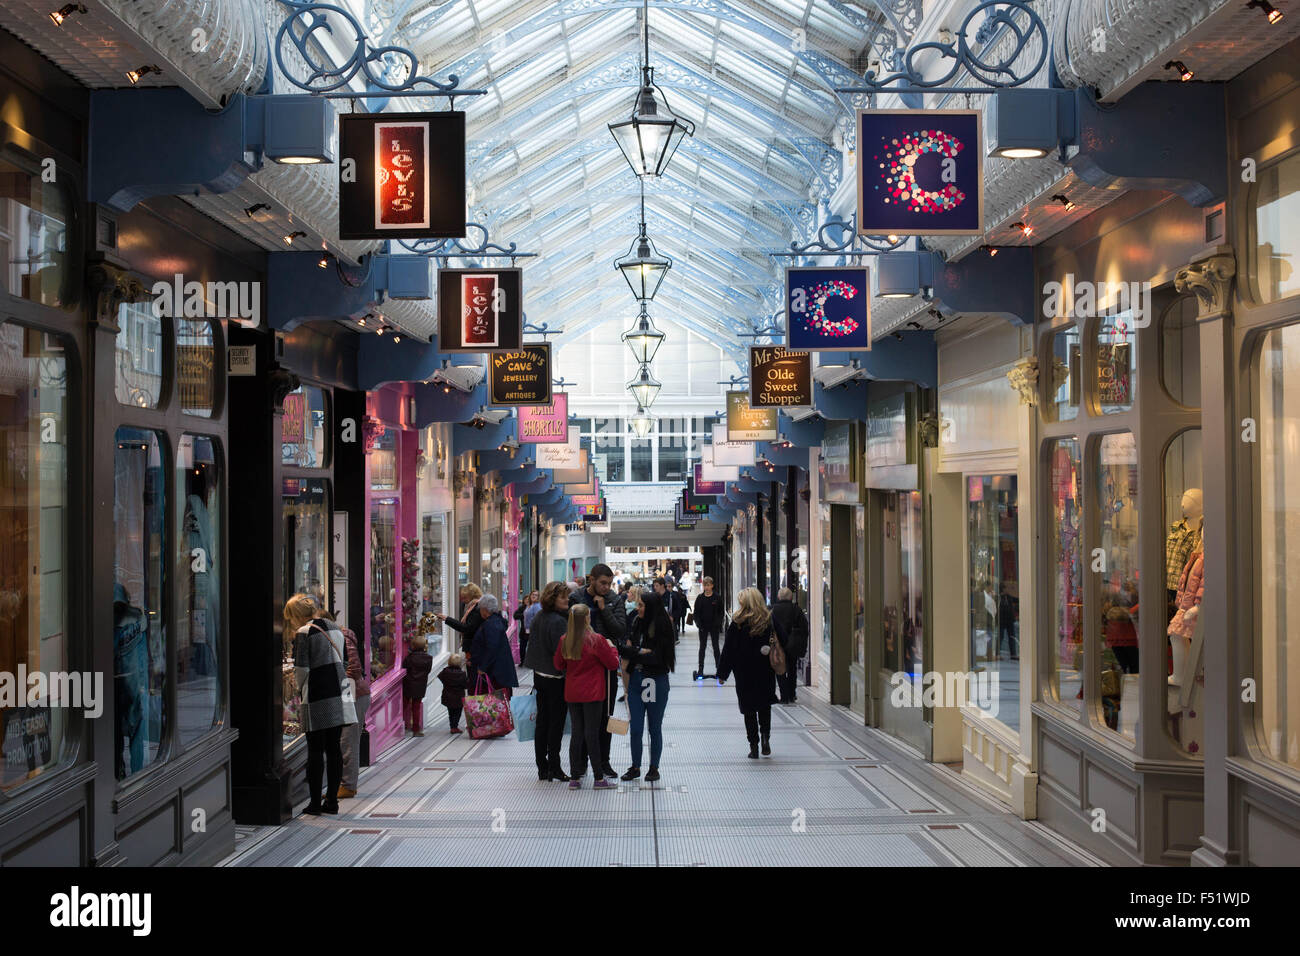 Thornton's Arcade in Leeds, West Yorkshire, UK. Designed by George Smith. - Stock Image